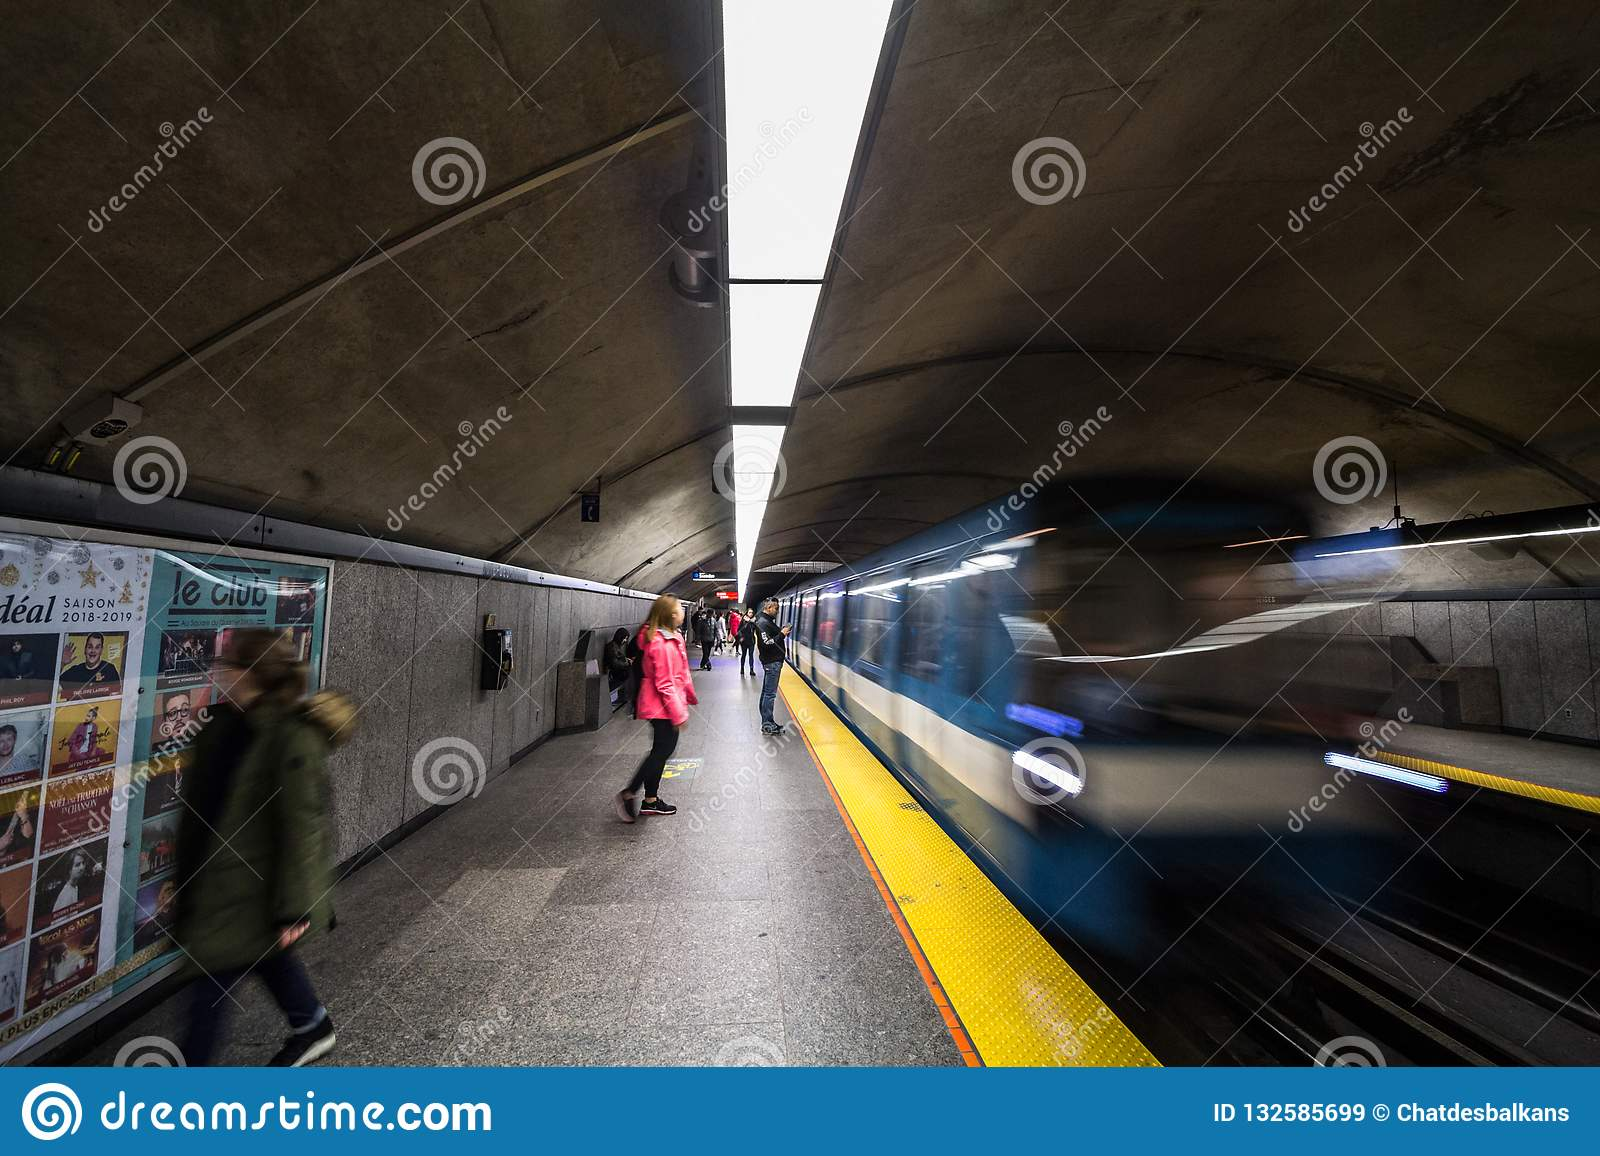 People waiting for a subway in Cote des Neiges station platform, blue line, while a metro train is coming, with a speed blur